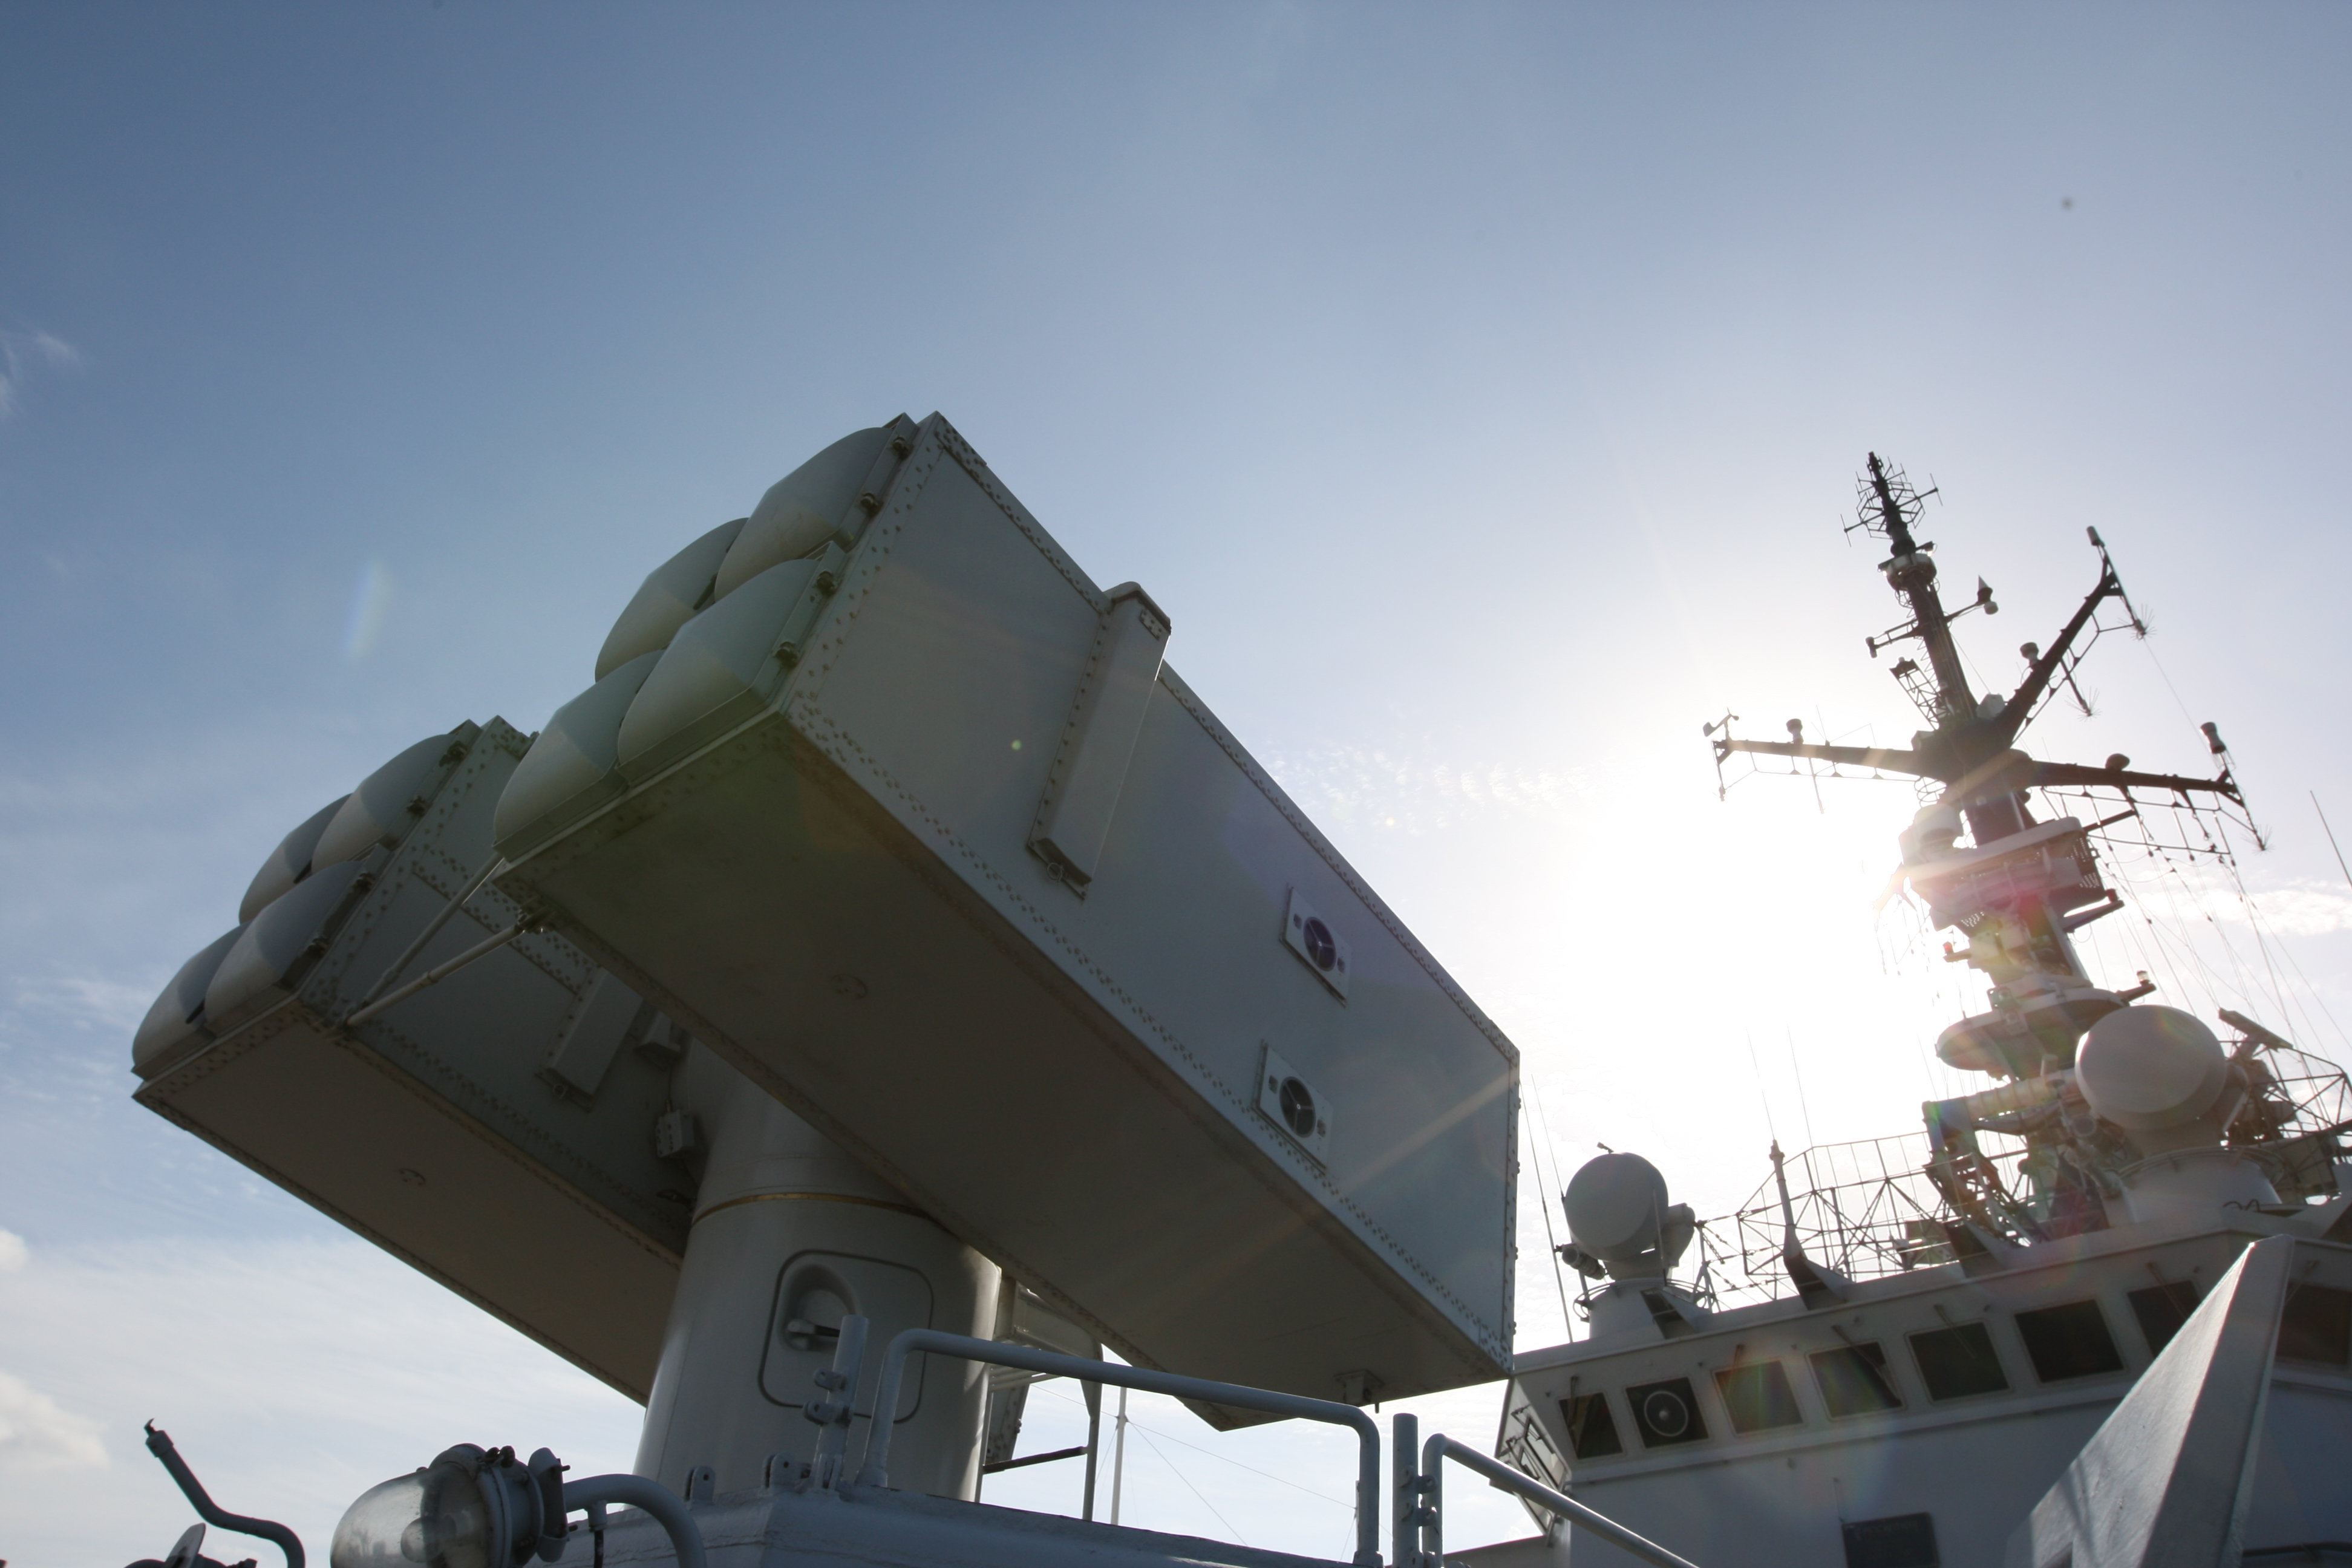 The Albatros system by MBDA is in service in 14 countries worldwide